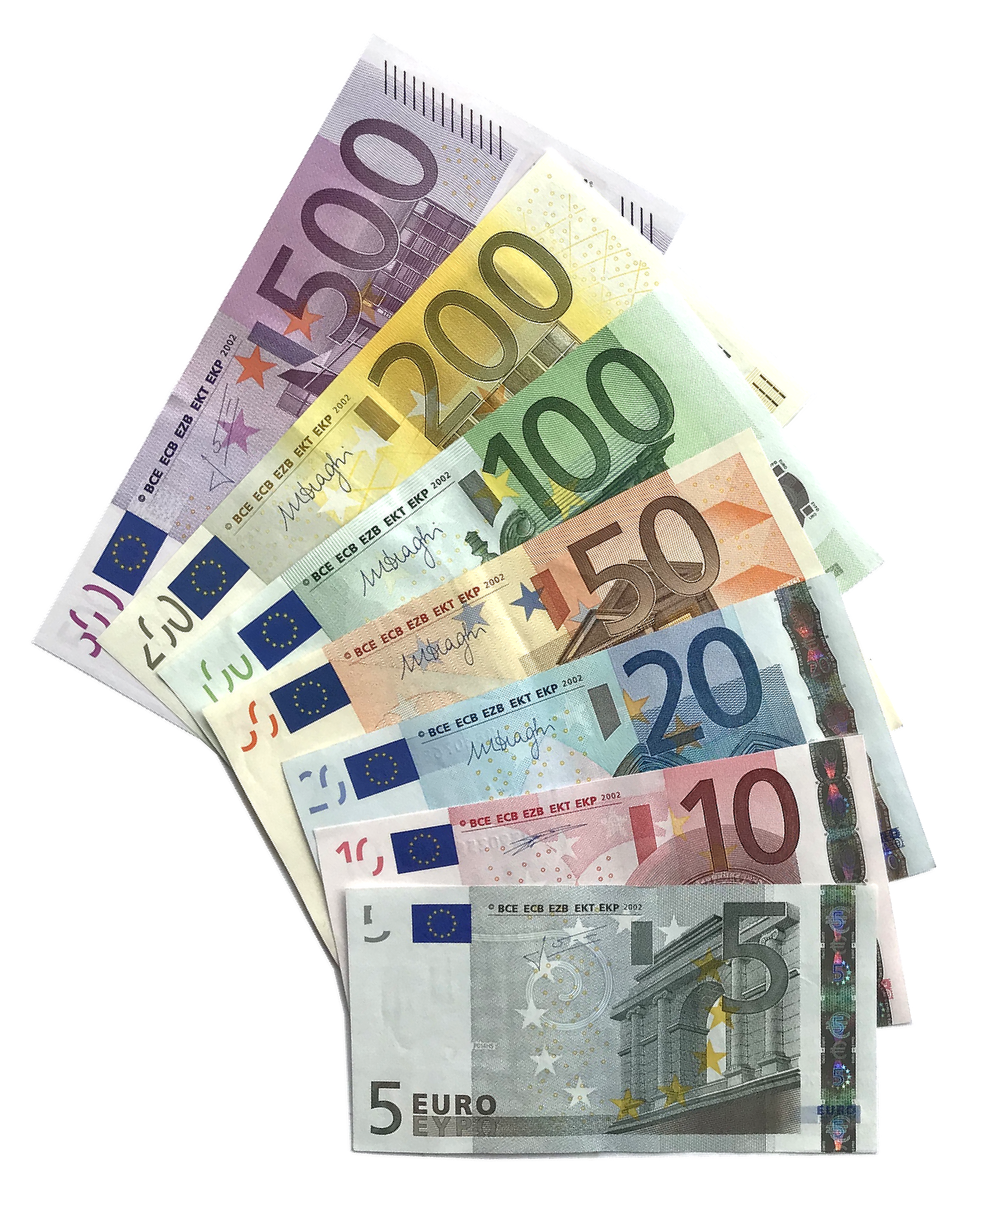 Euro coins and banknotes are adopted